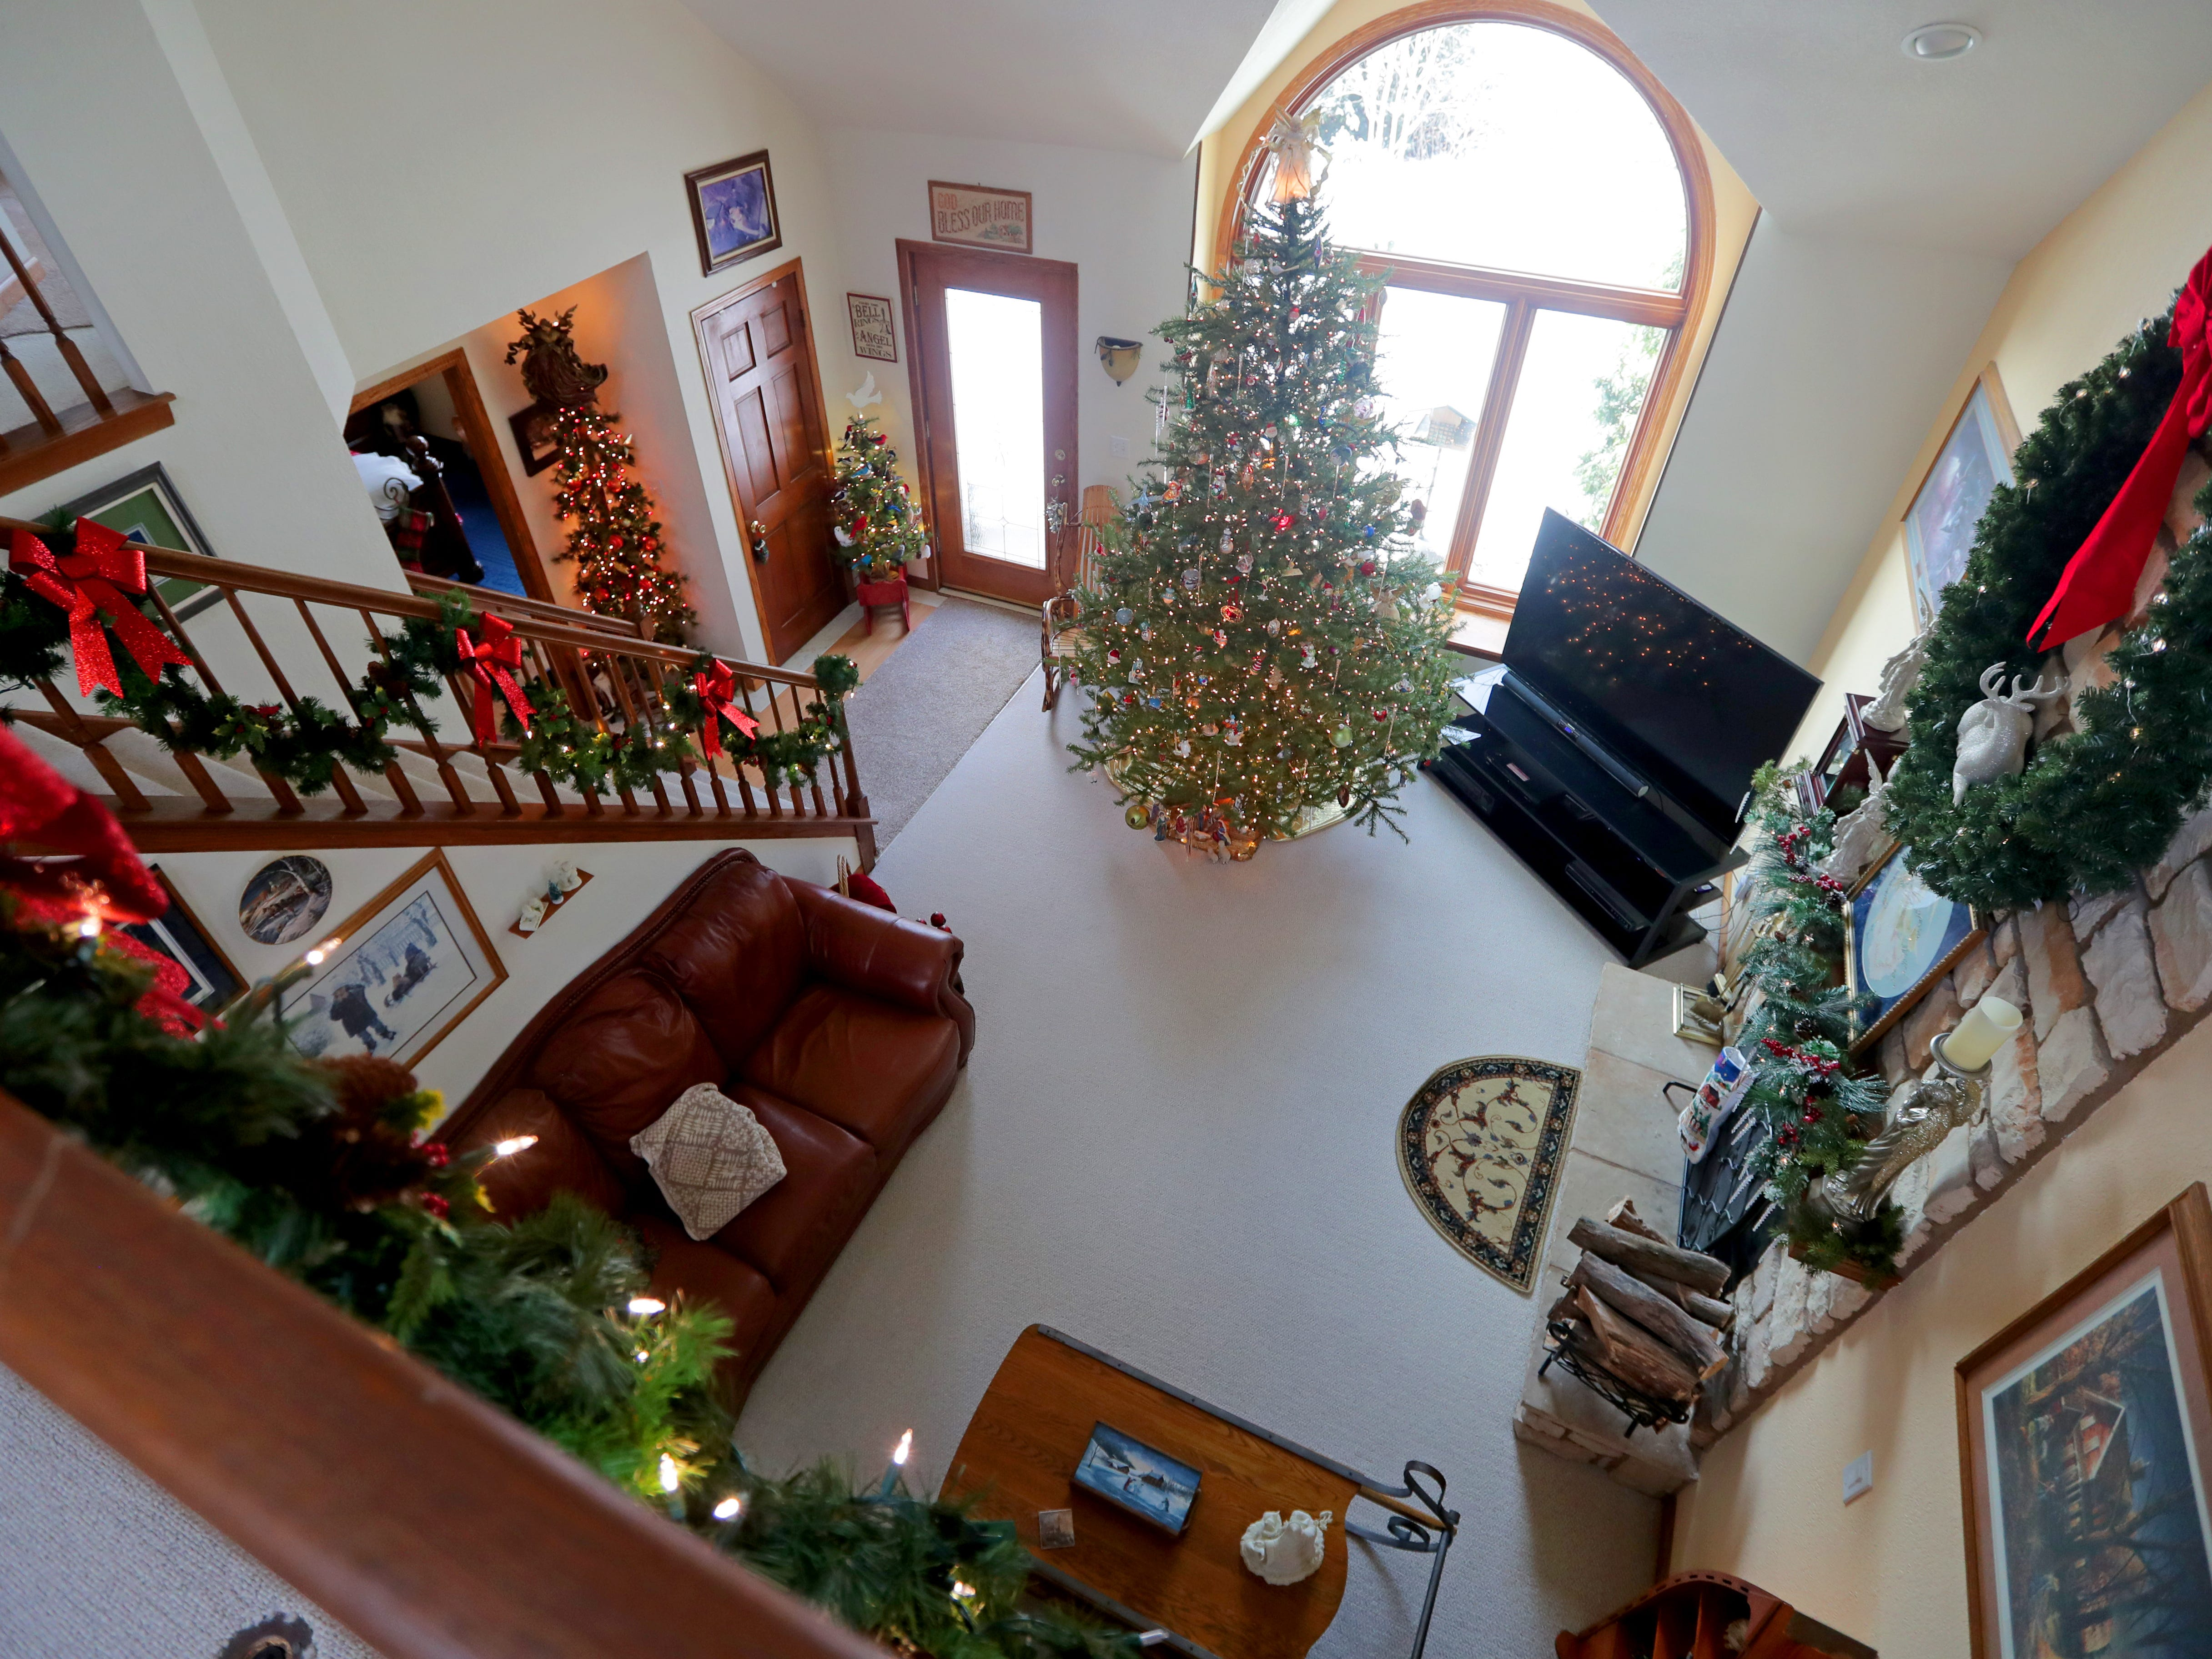 The view from the balcony shows a festively decorated living room below.